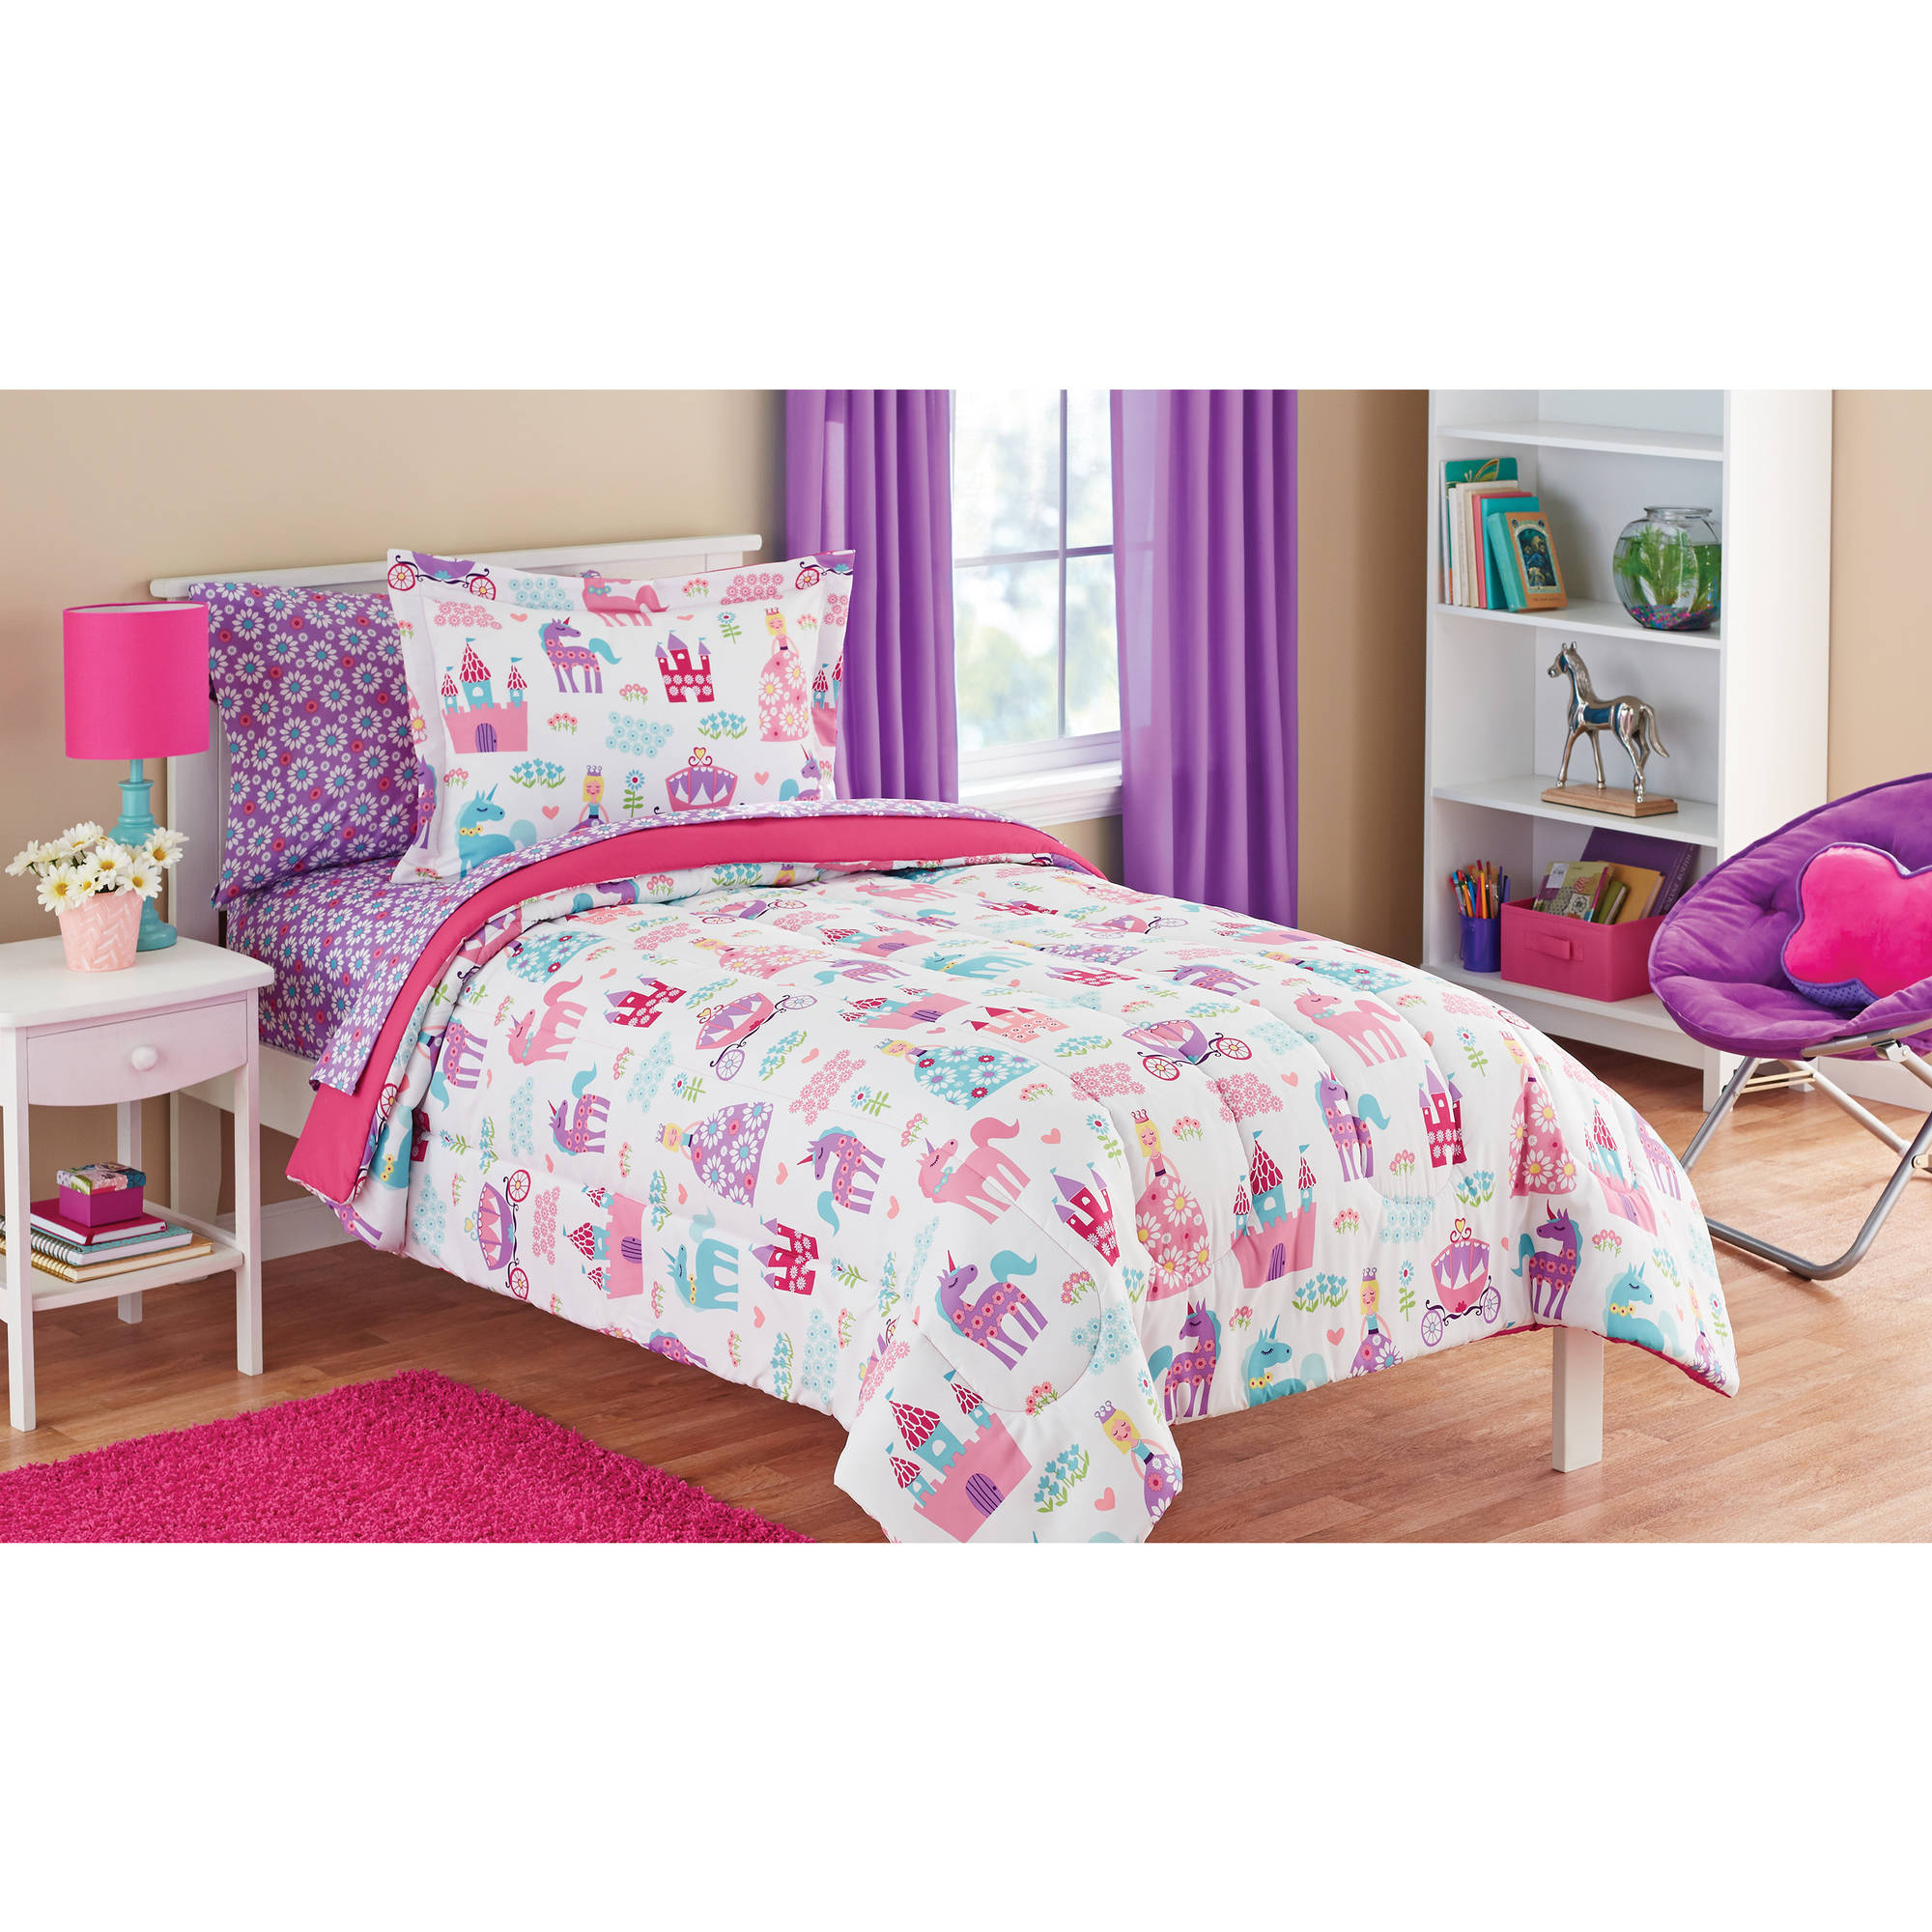 set mainstays a kids chevron bed on bag outer coordinated space l in transportation pinterest larger bedding view